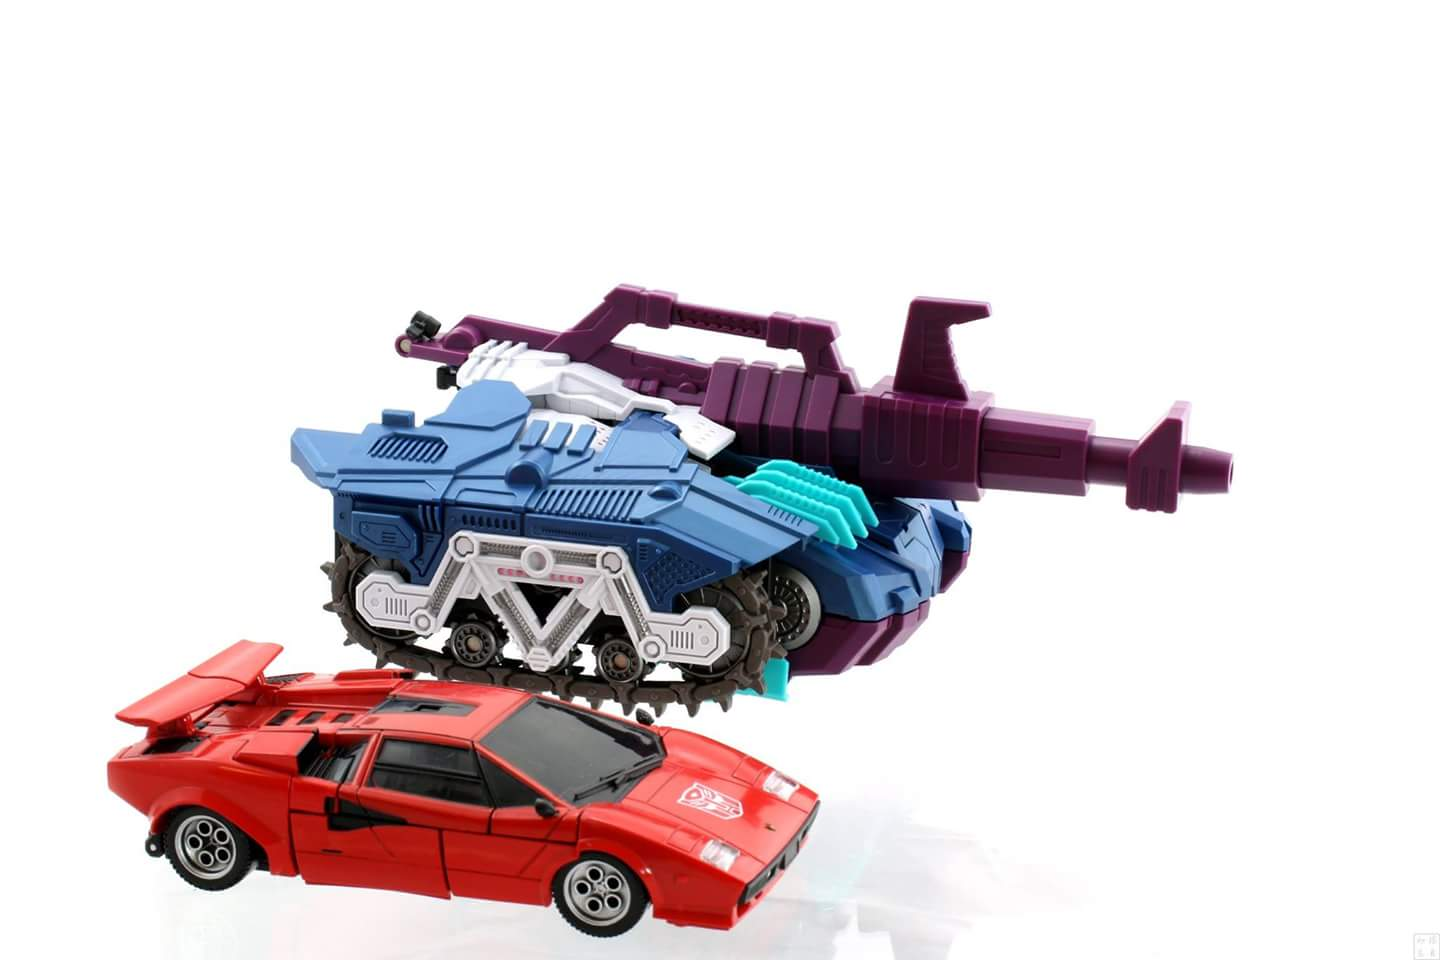 [Mastermind Creations] Produit Tiers - R-17 Carnifex - aka Overlord (TF Masterforce) - Page 3 4L6fanBq